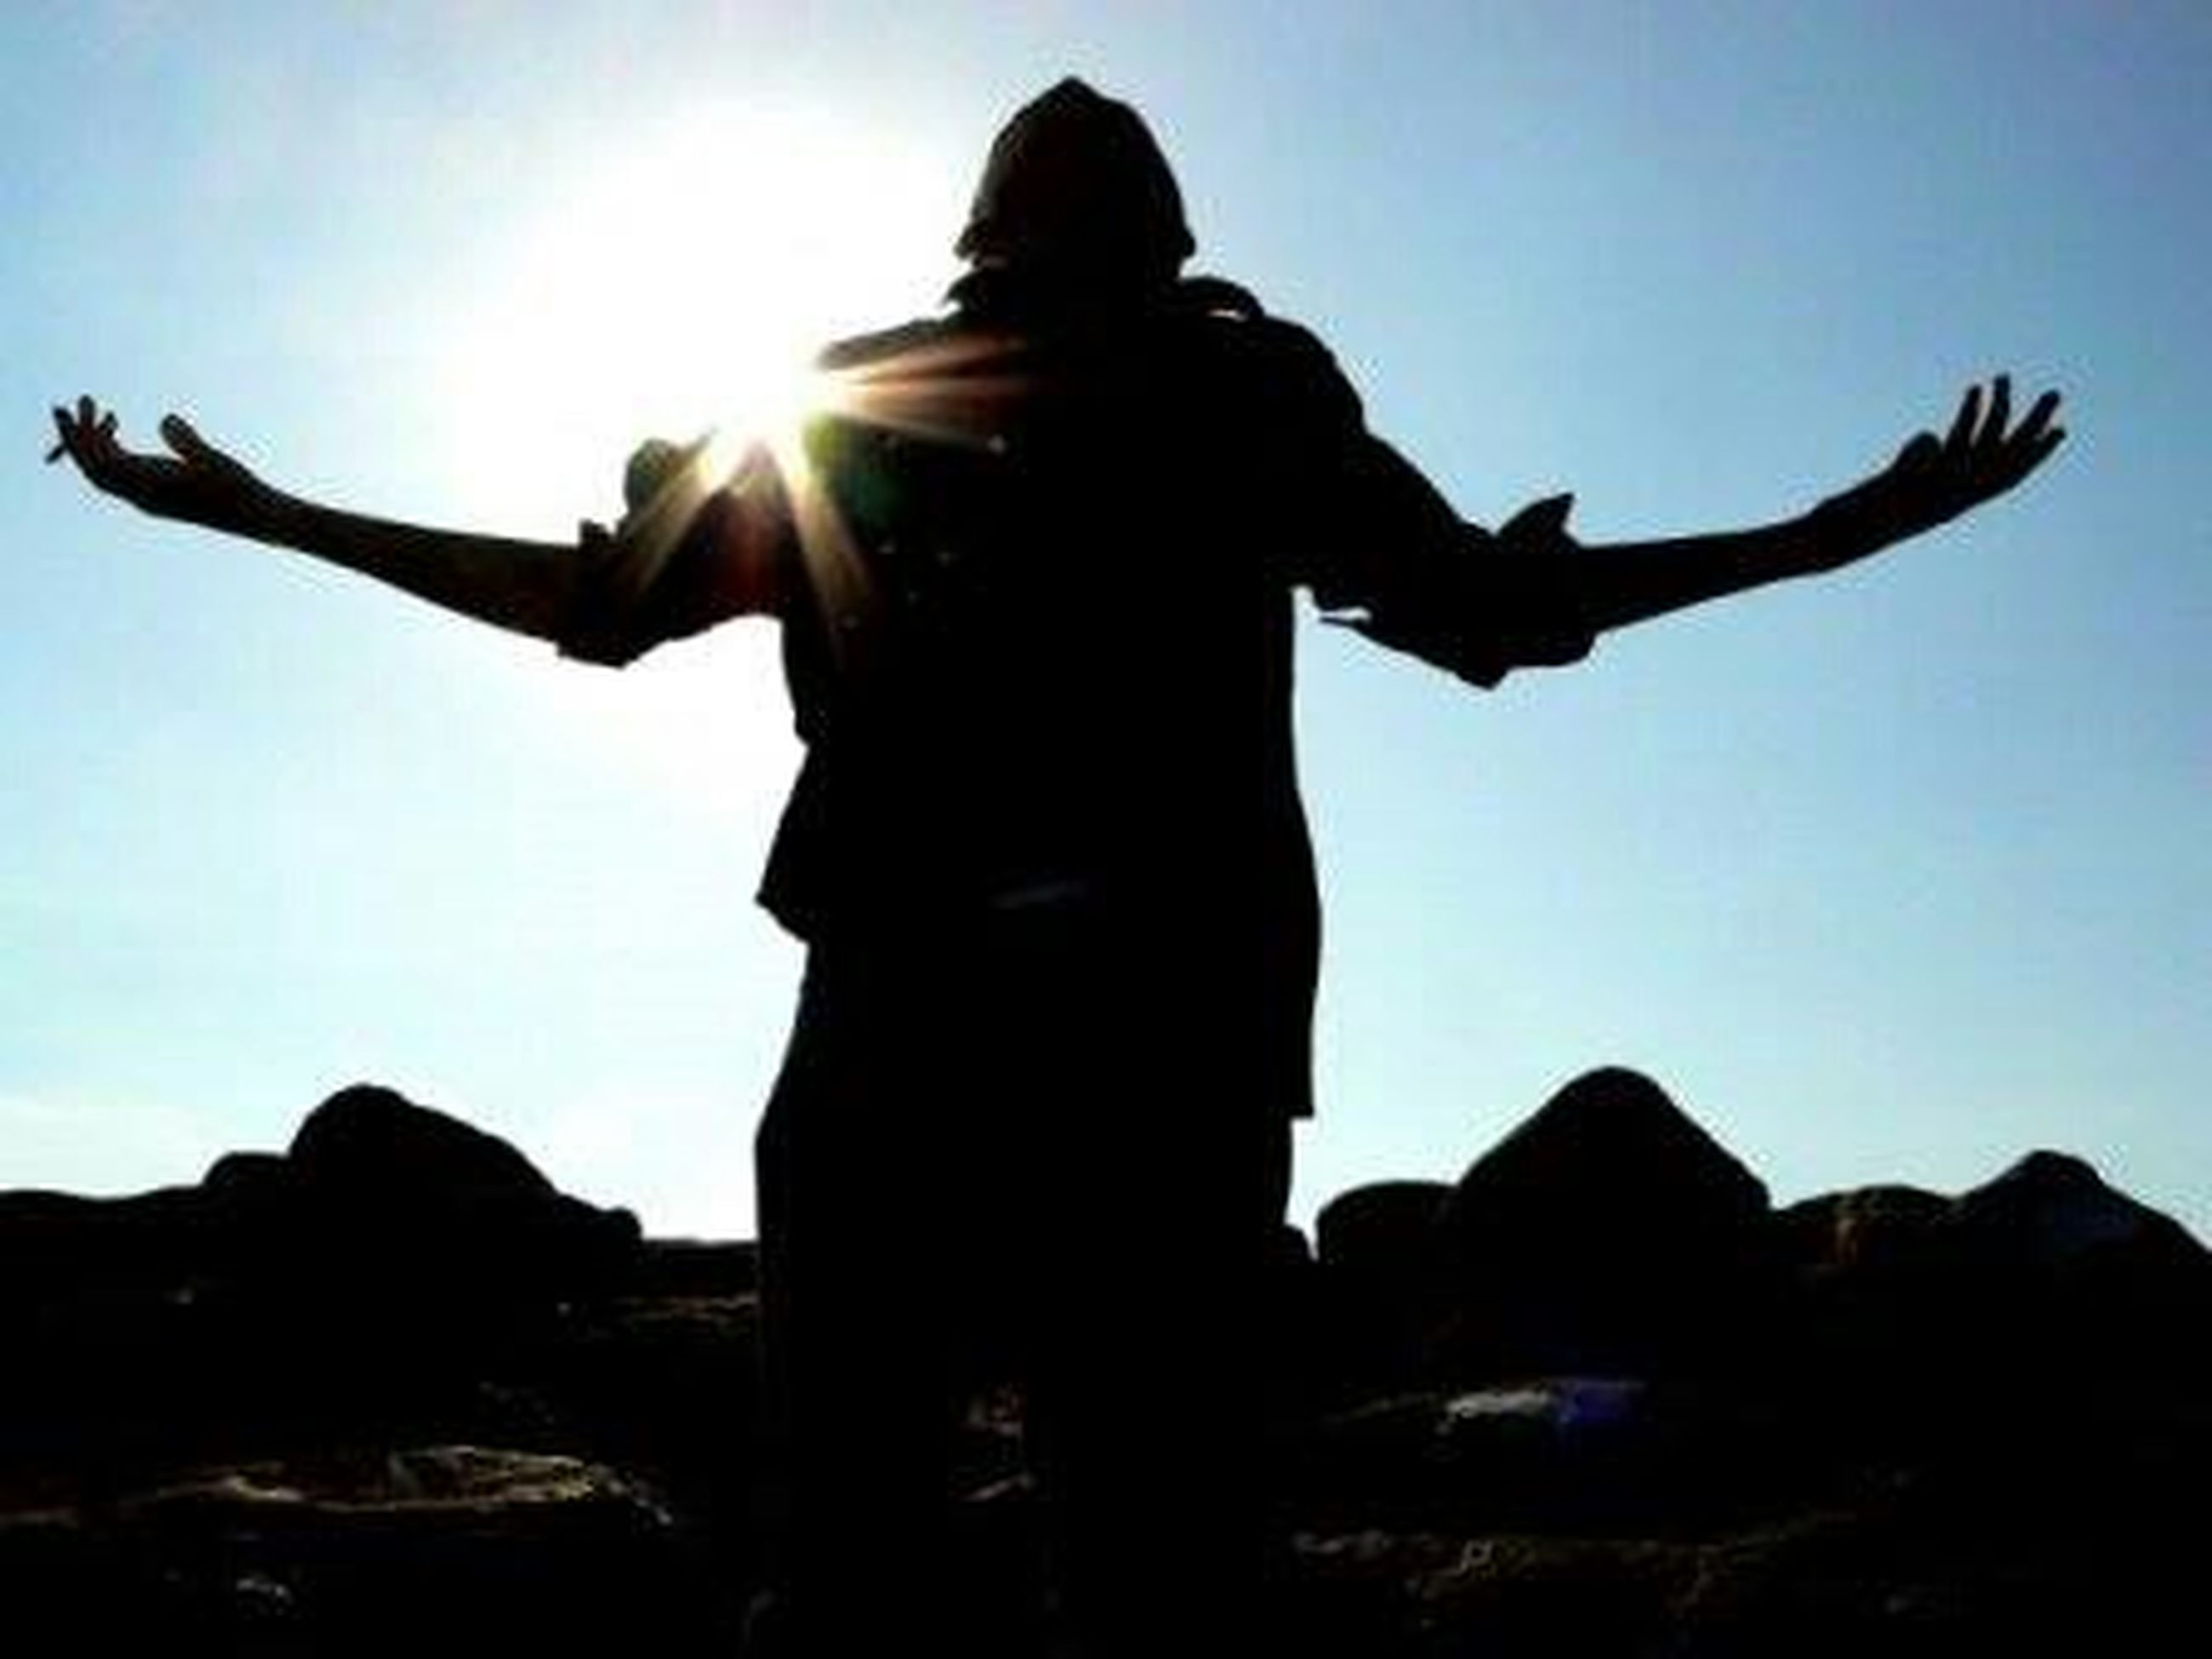 silhouette, sun, lifestyles, leisure activity, low angle view, standing, sky, sunbeam, full length, sunlight, arms outstretched, clear sky, lens flare, three quarter length, young adult, tranquility, rock - object, arms raised